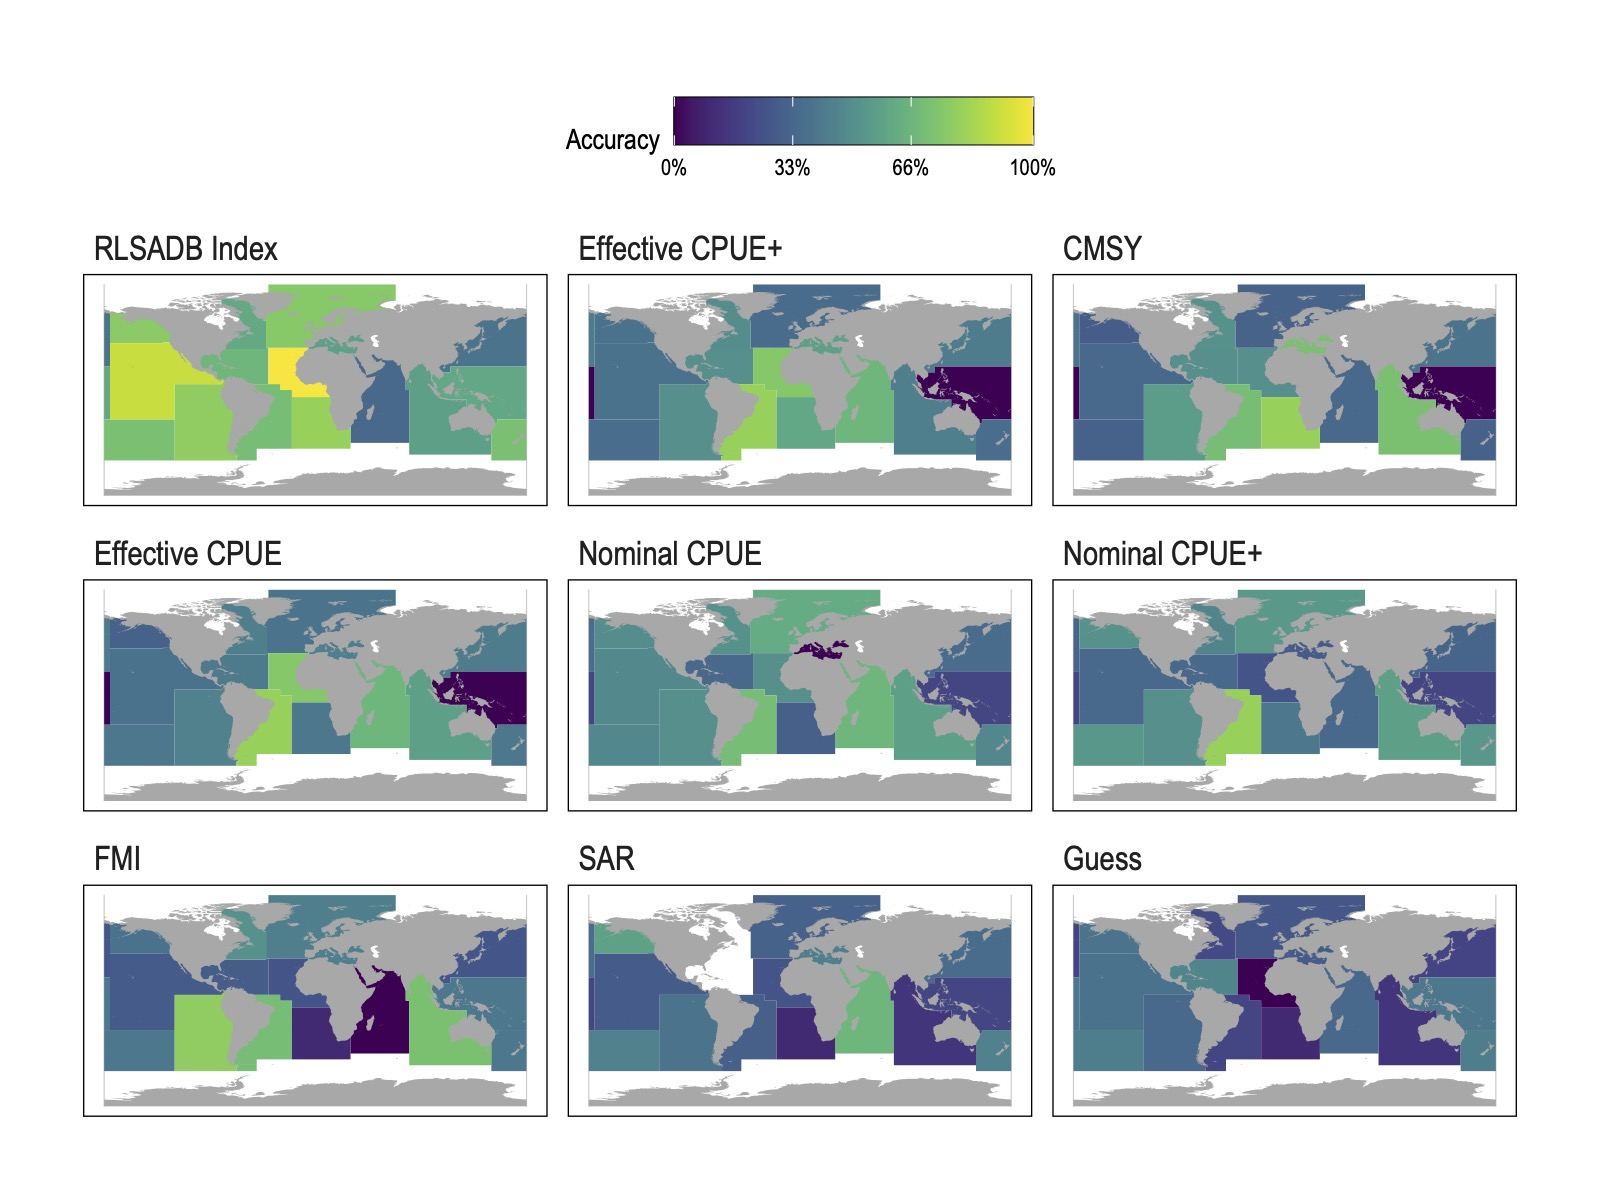 Mean classification accuracy (assignment to FAO stock status category) by FAO statistical area arising from different data sources. Data source panels are ordered in descending (starting from top left) mean accuracy at the FAO region level.